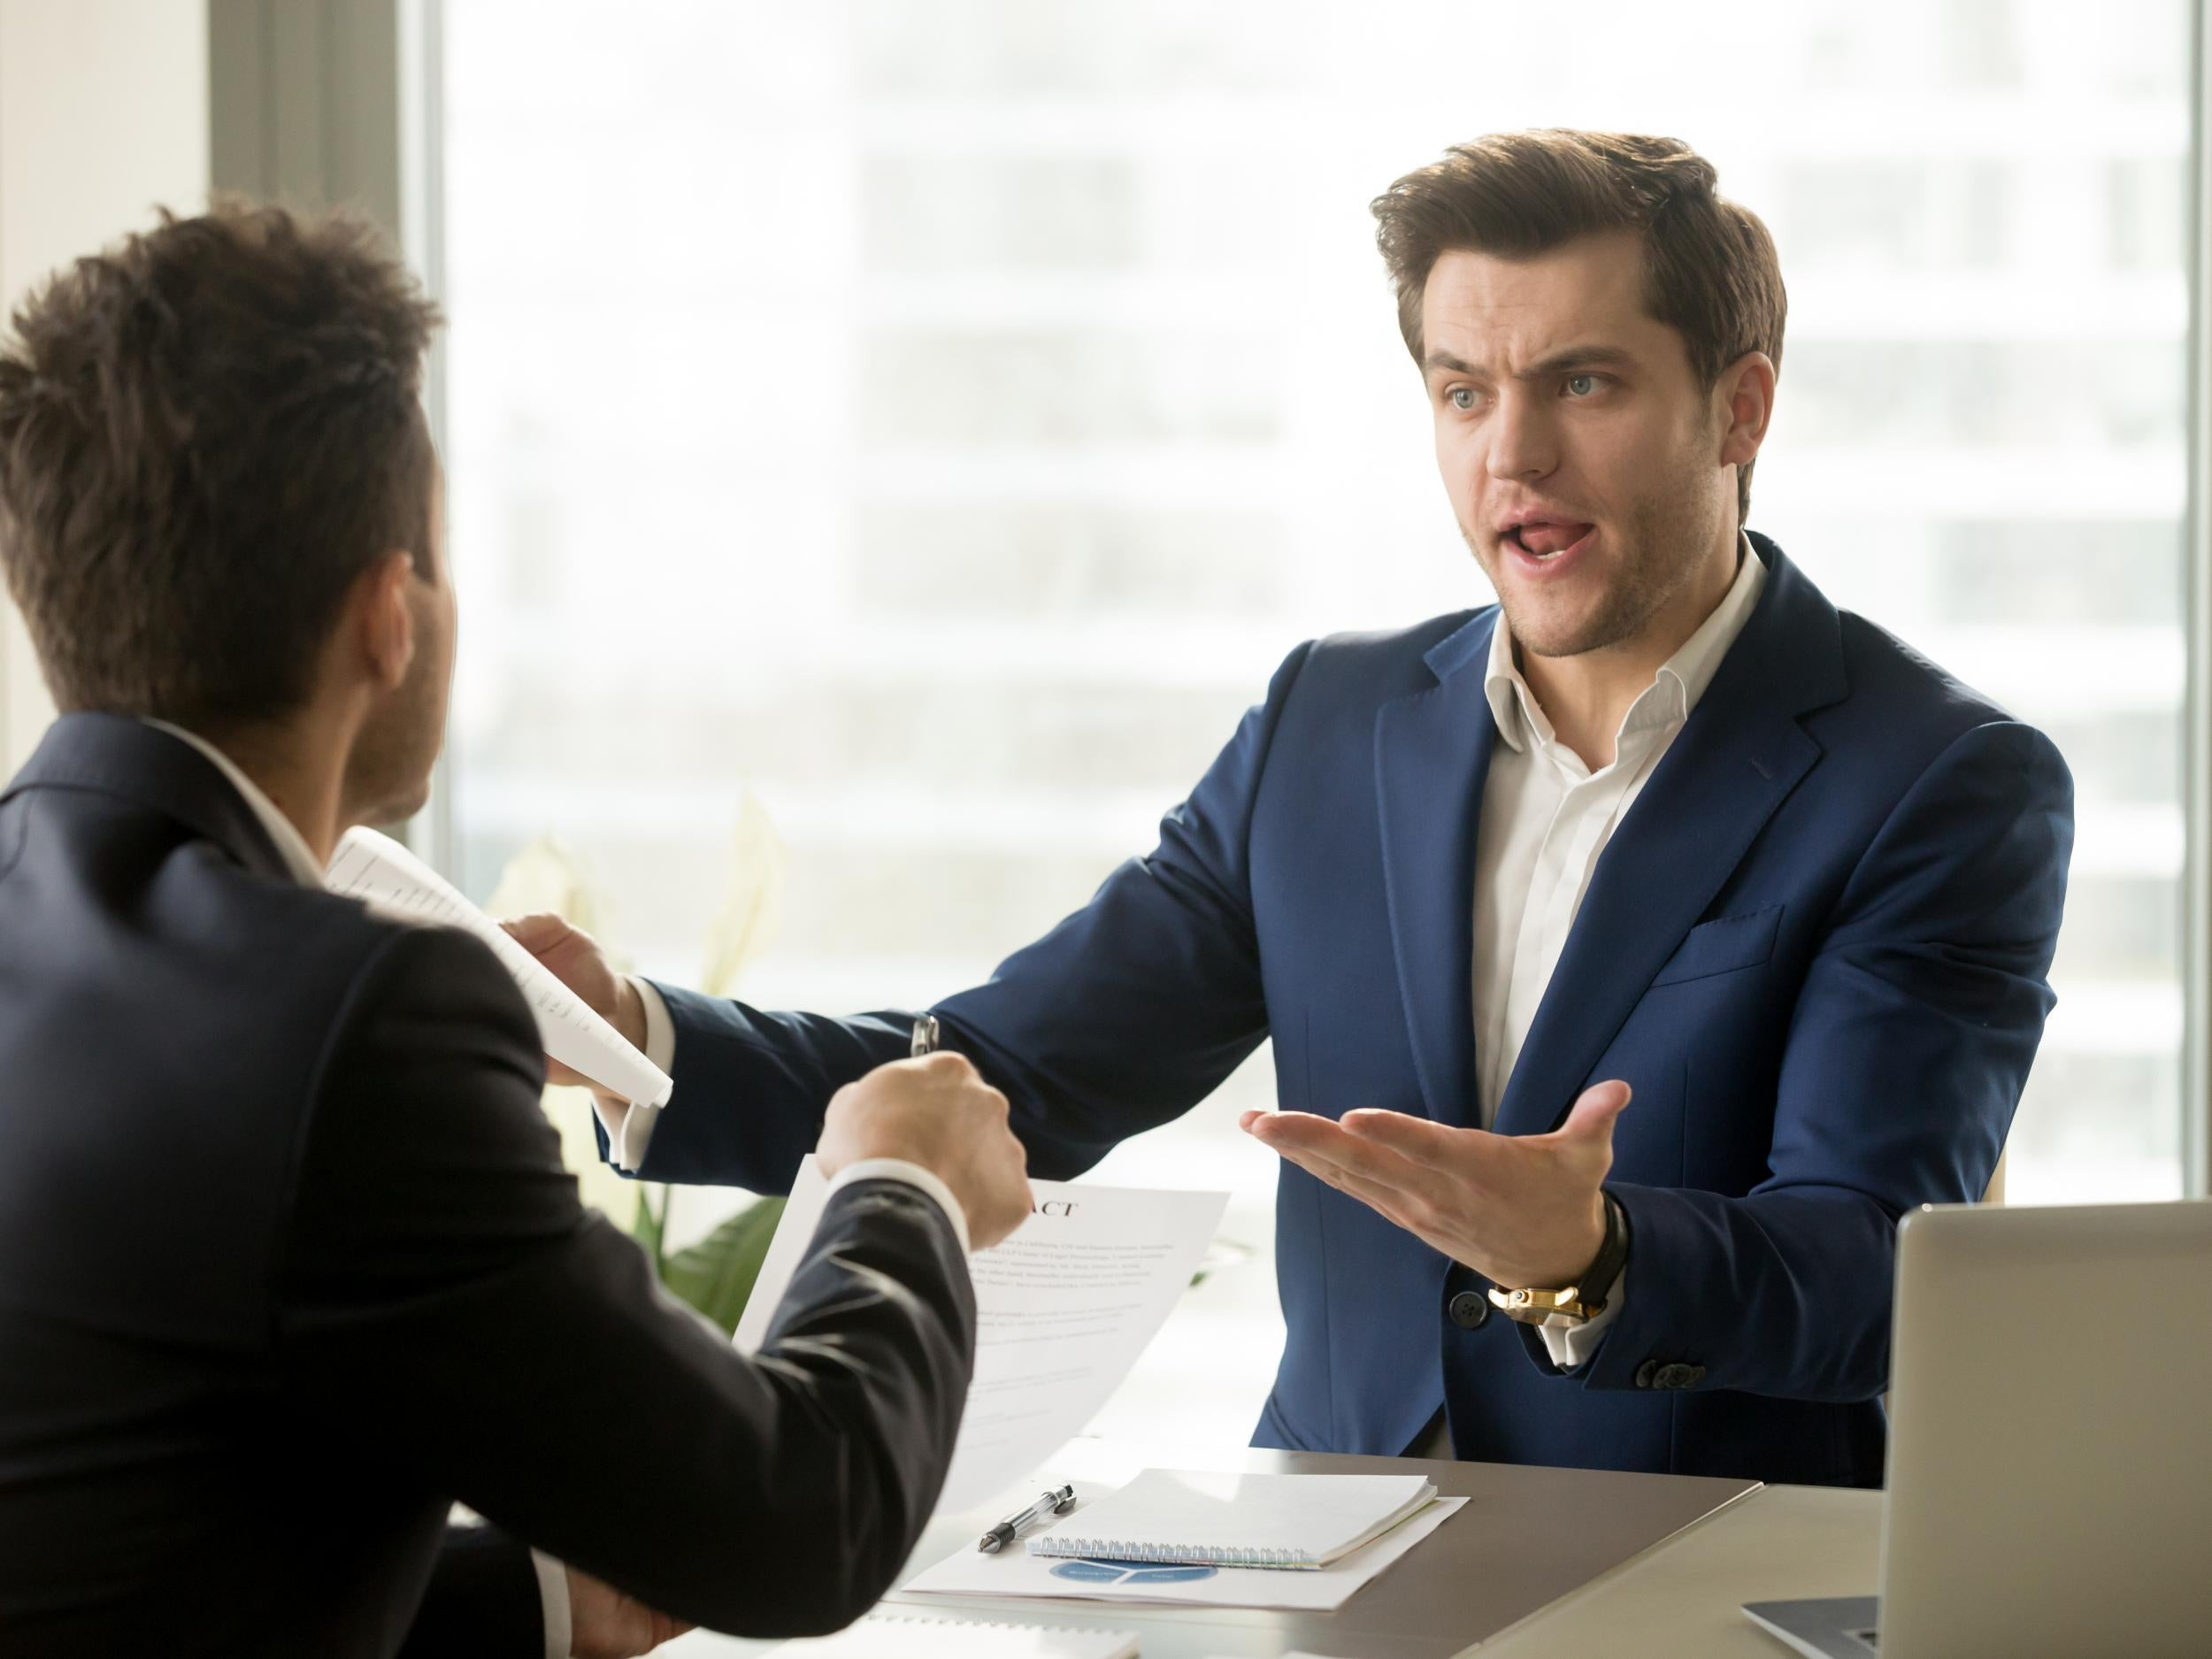 Twenty-two signs your co-workers secretly hate you | The